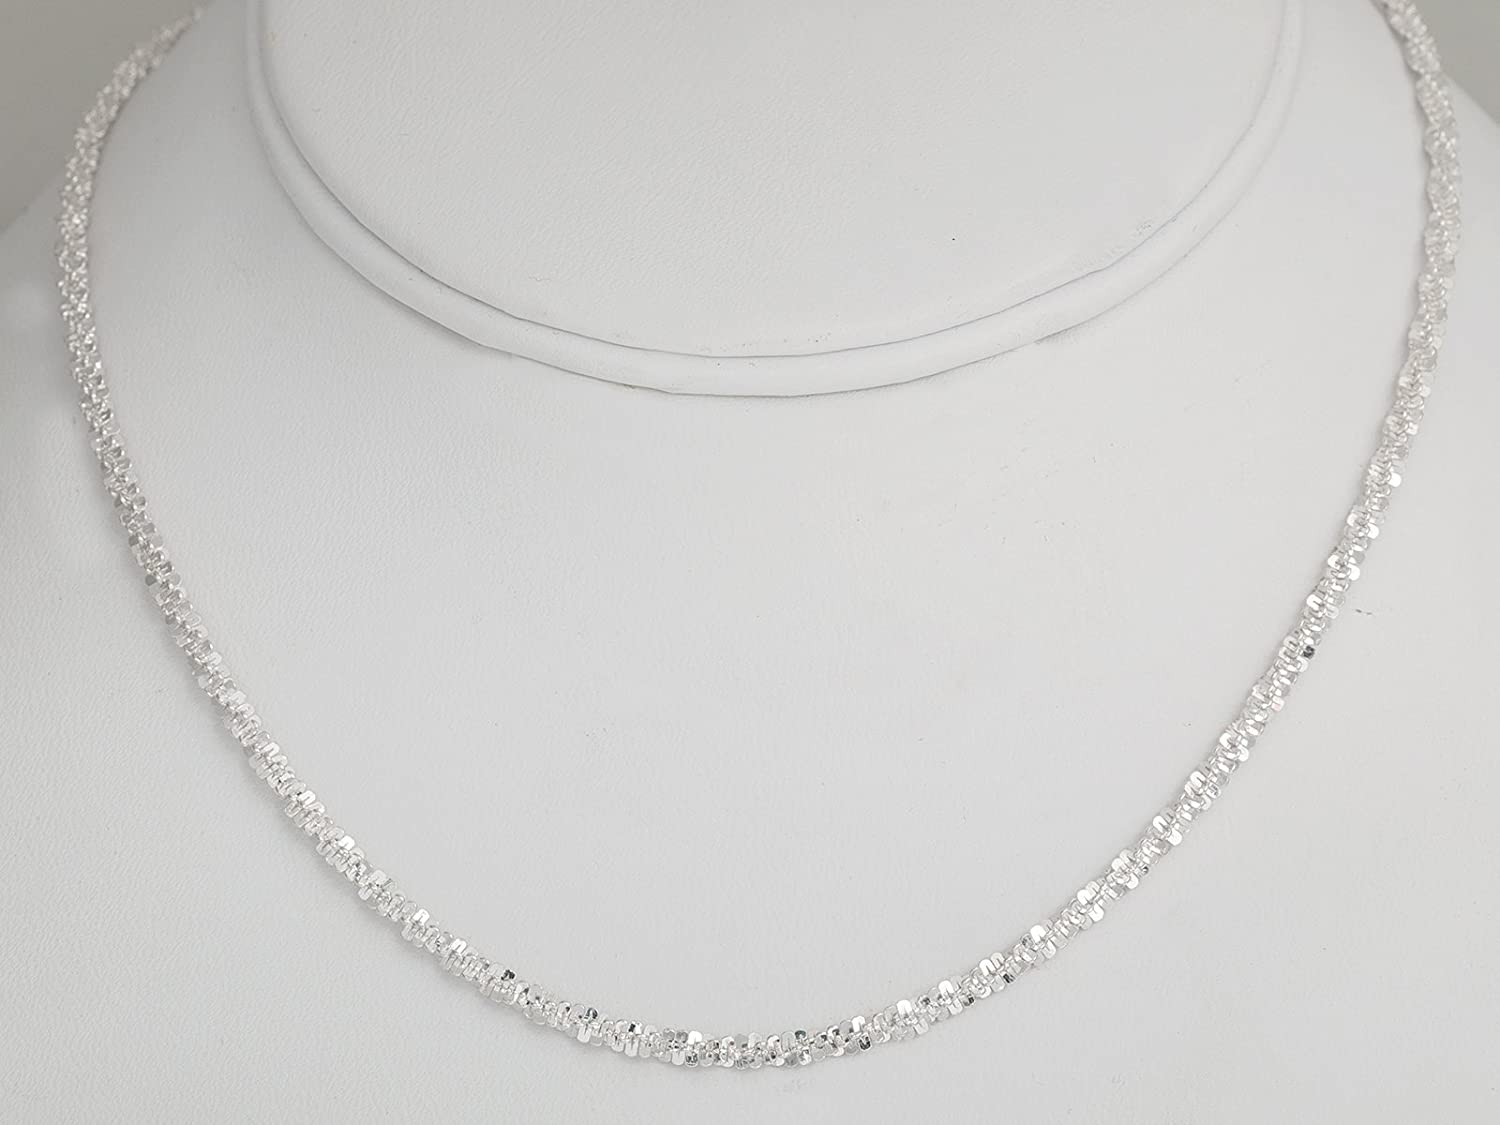 0b3d9c7884ed99 Amazon.com: Pori Jewelers 925 Sterling Silver 2.5MM Twisted ROC Chain  Necklace - for Women - Made in Italy (18): Jewelry